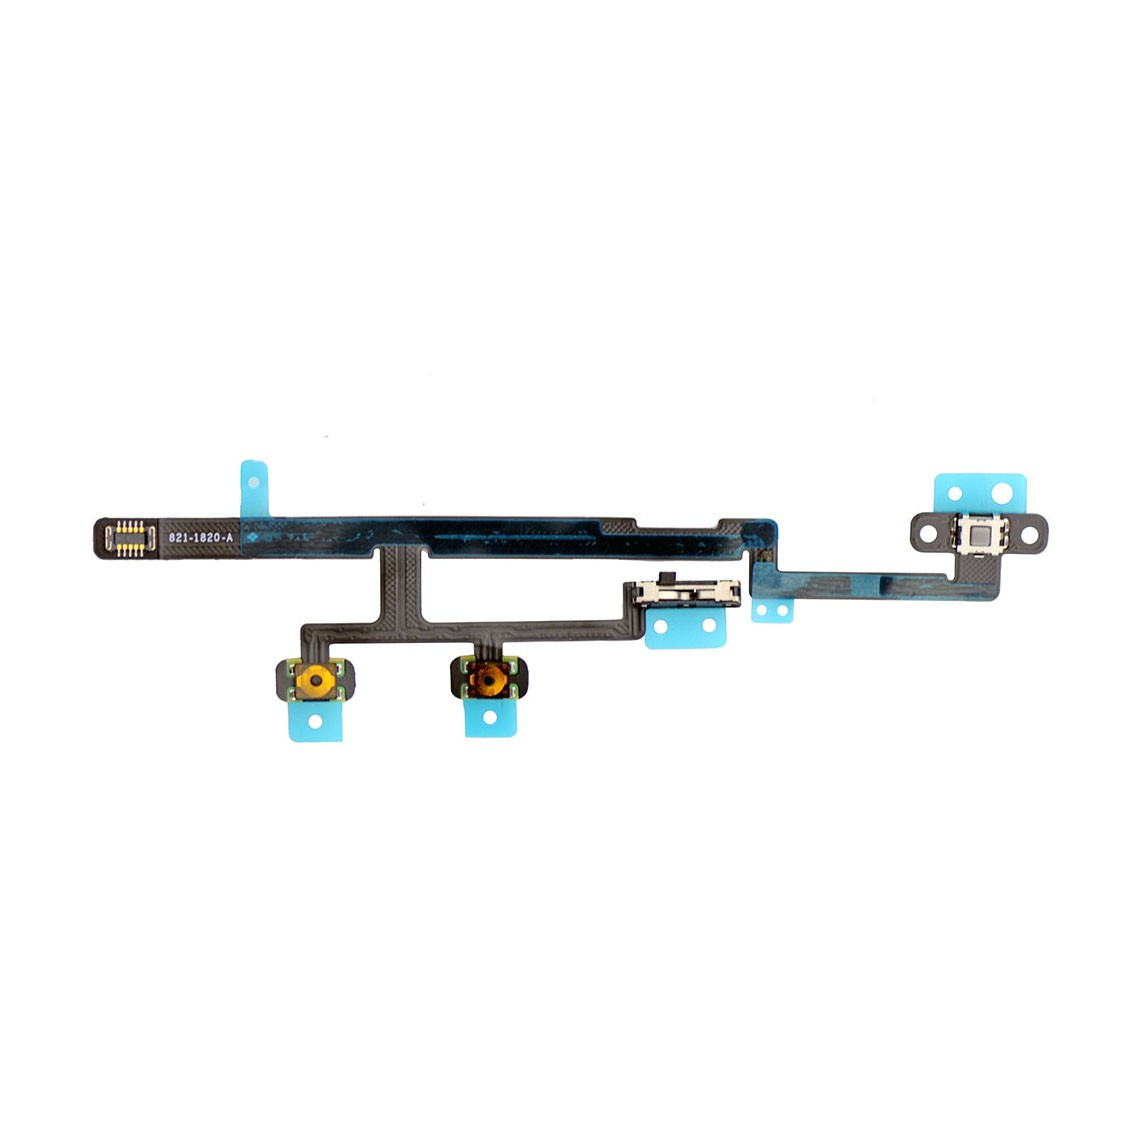 Volume Power Mute Switch Button Flex Replacement For Ipad